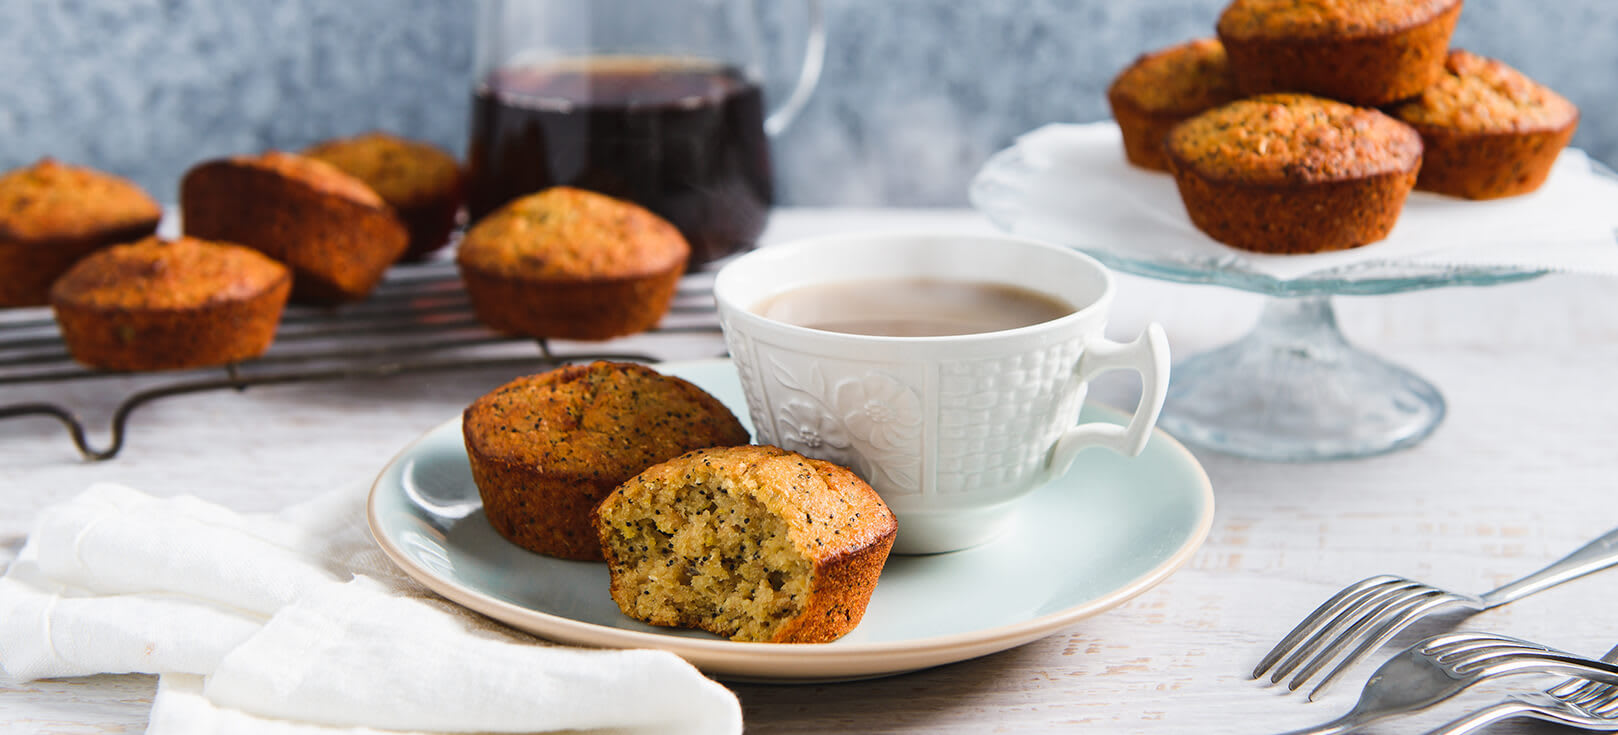 Orange & poppy seed muffins image 1